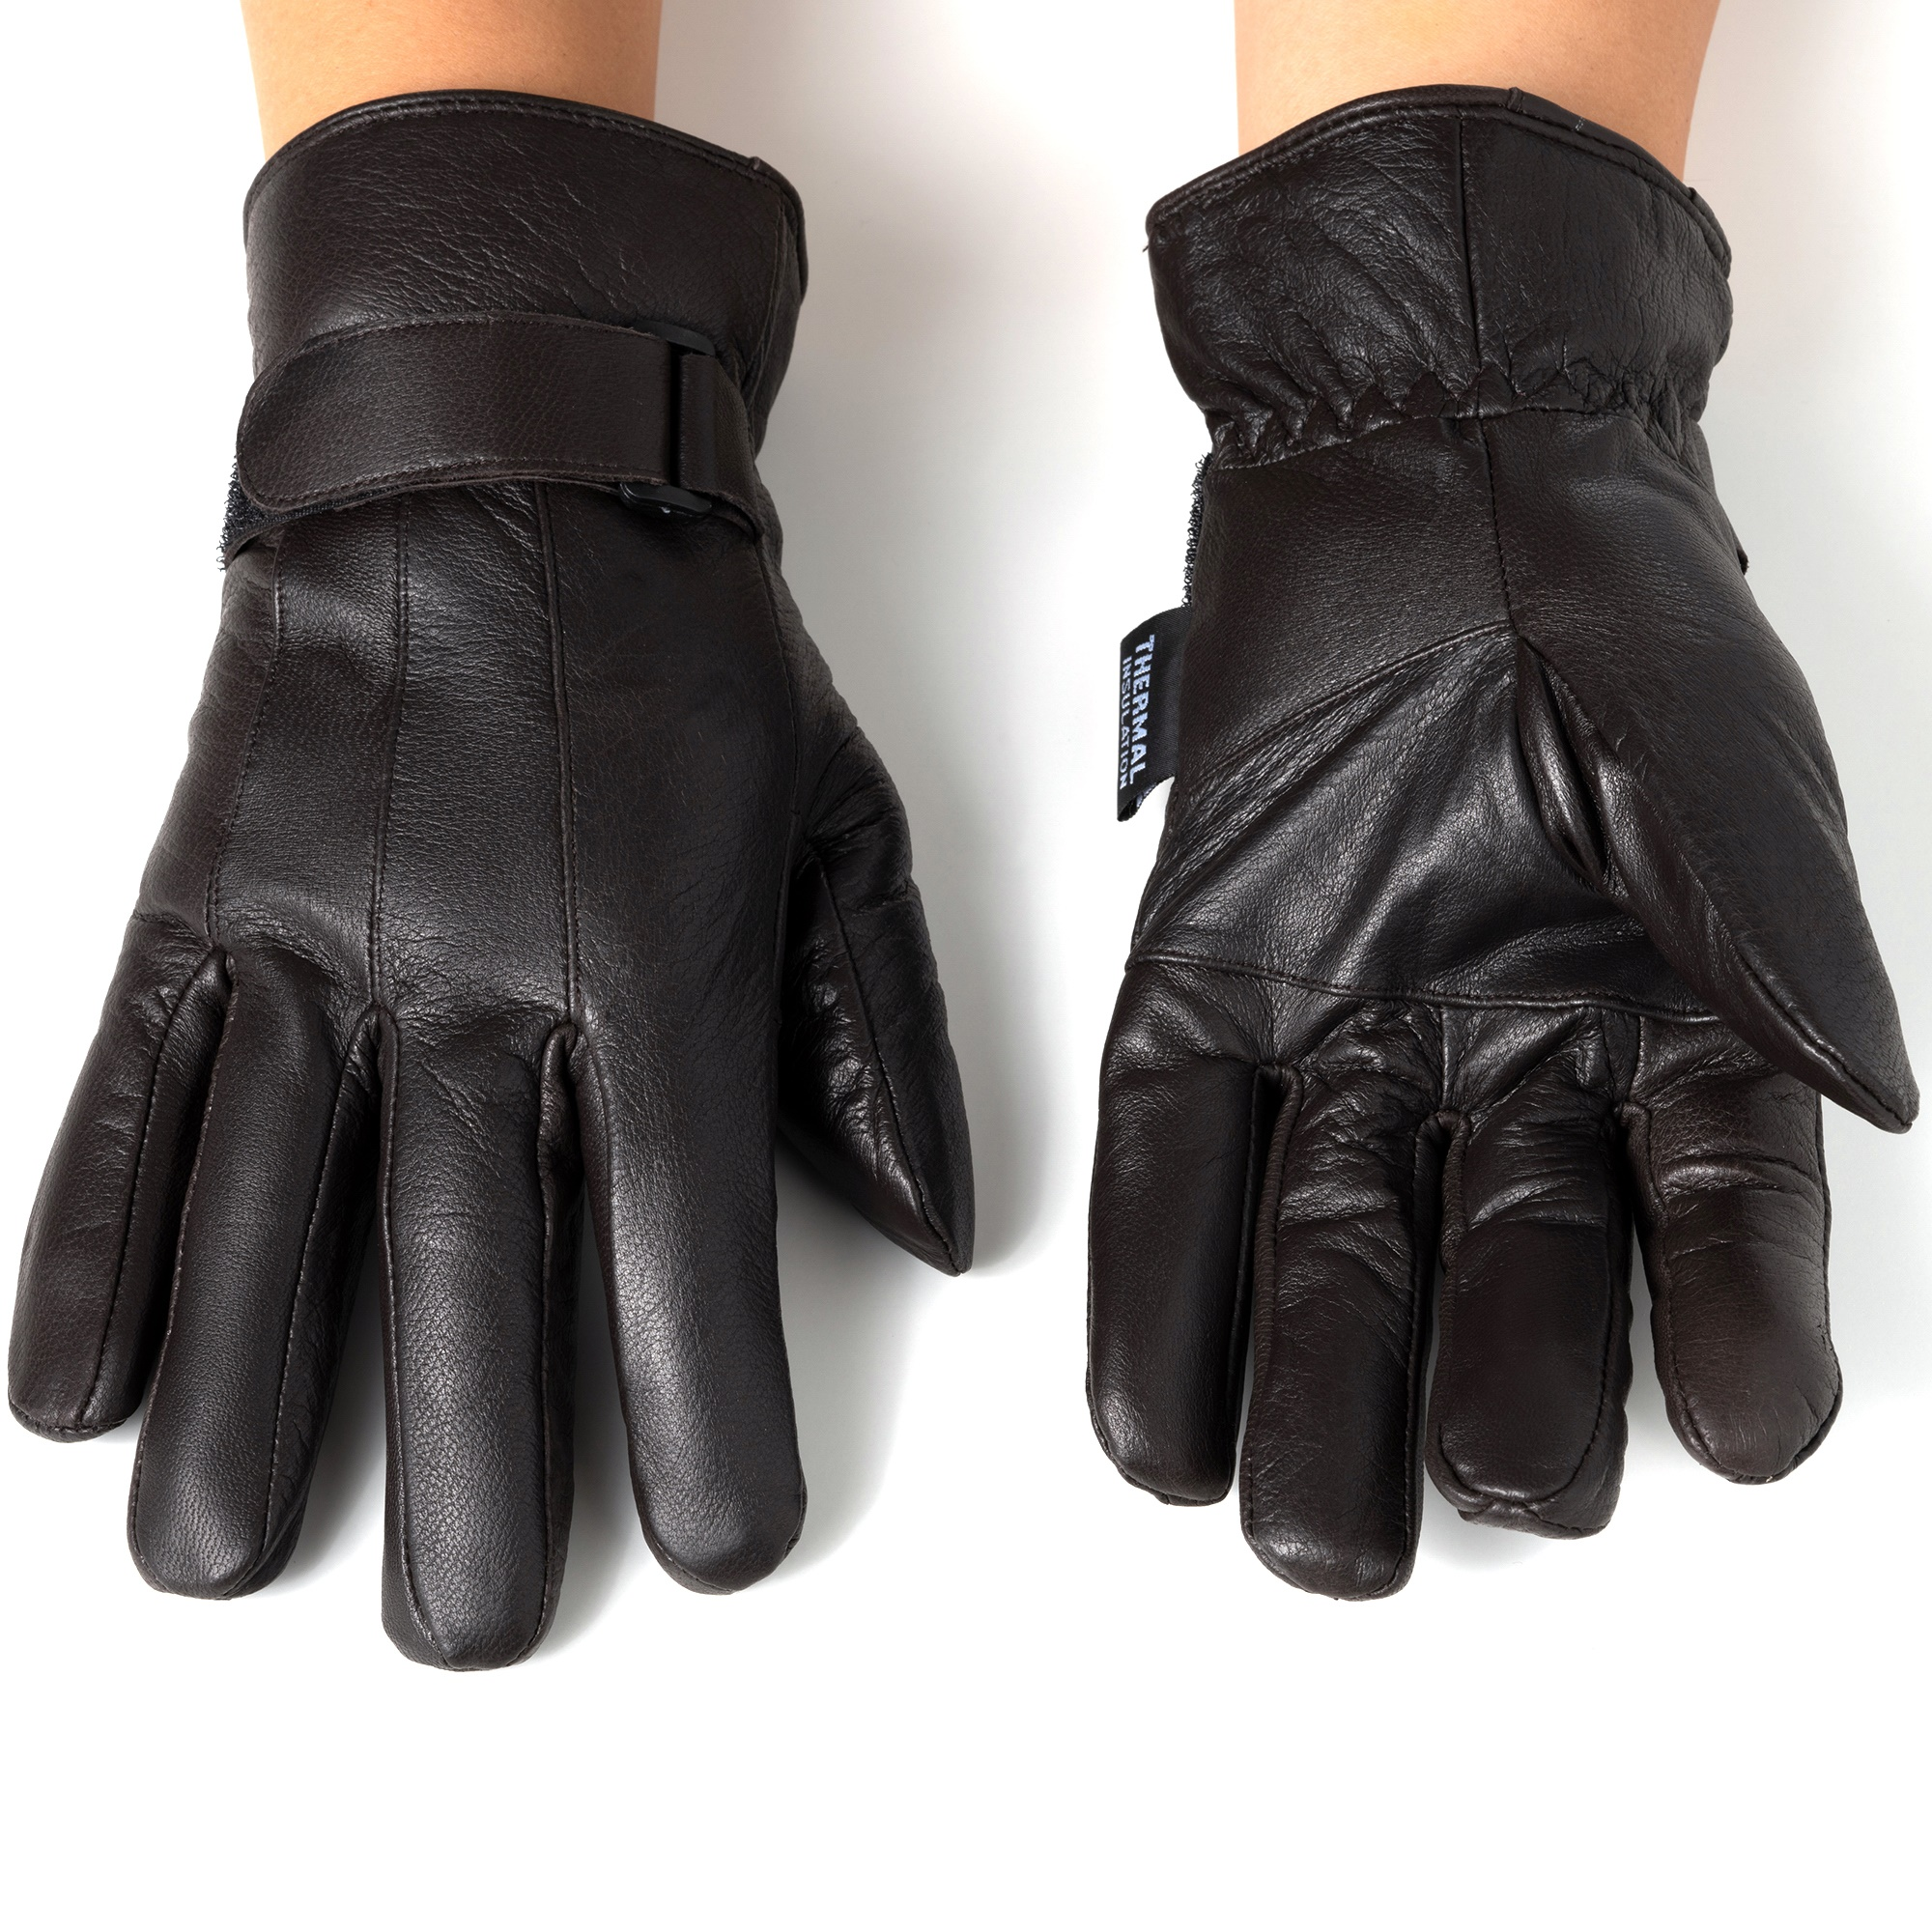 Alpine-Swiss-Mens-Gloves-Dressy-Genuine-Leather-Warm-Thermal-Lined-Wrist-Strap thumbnail 23